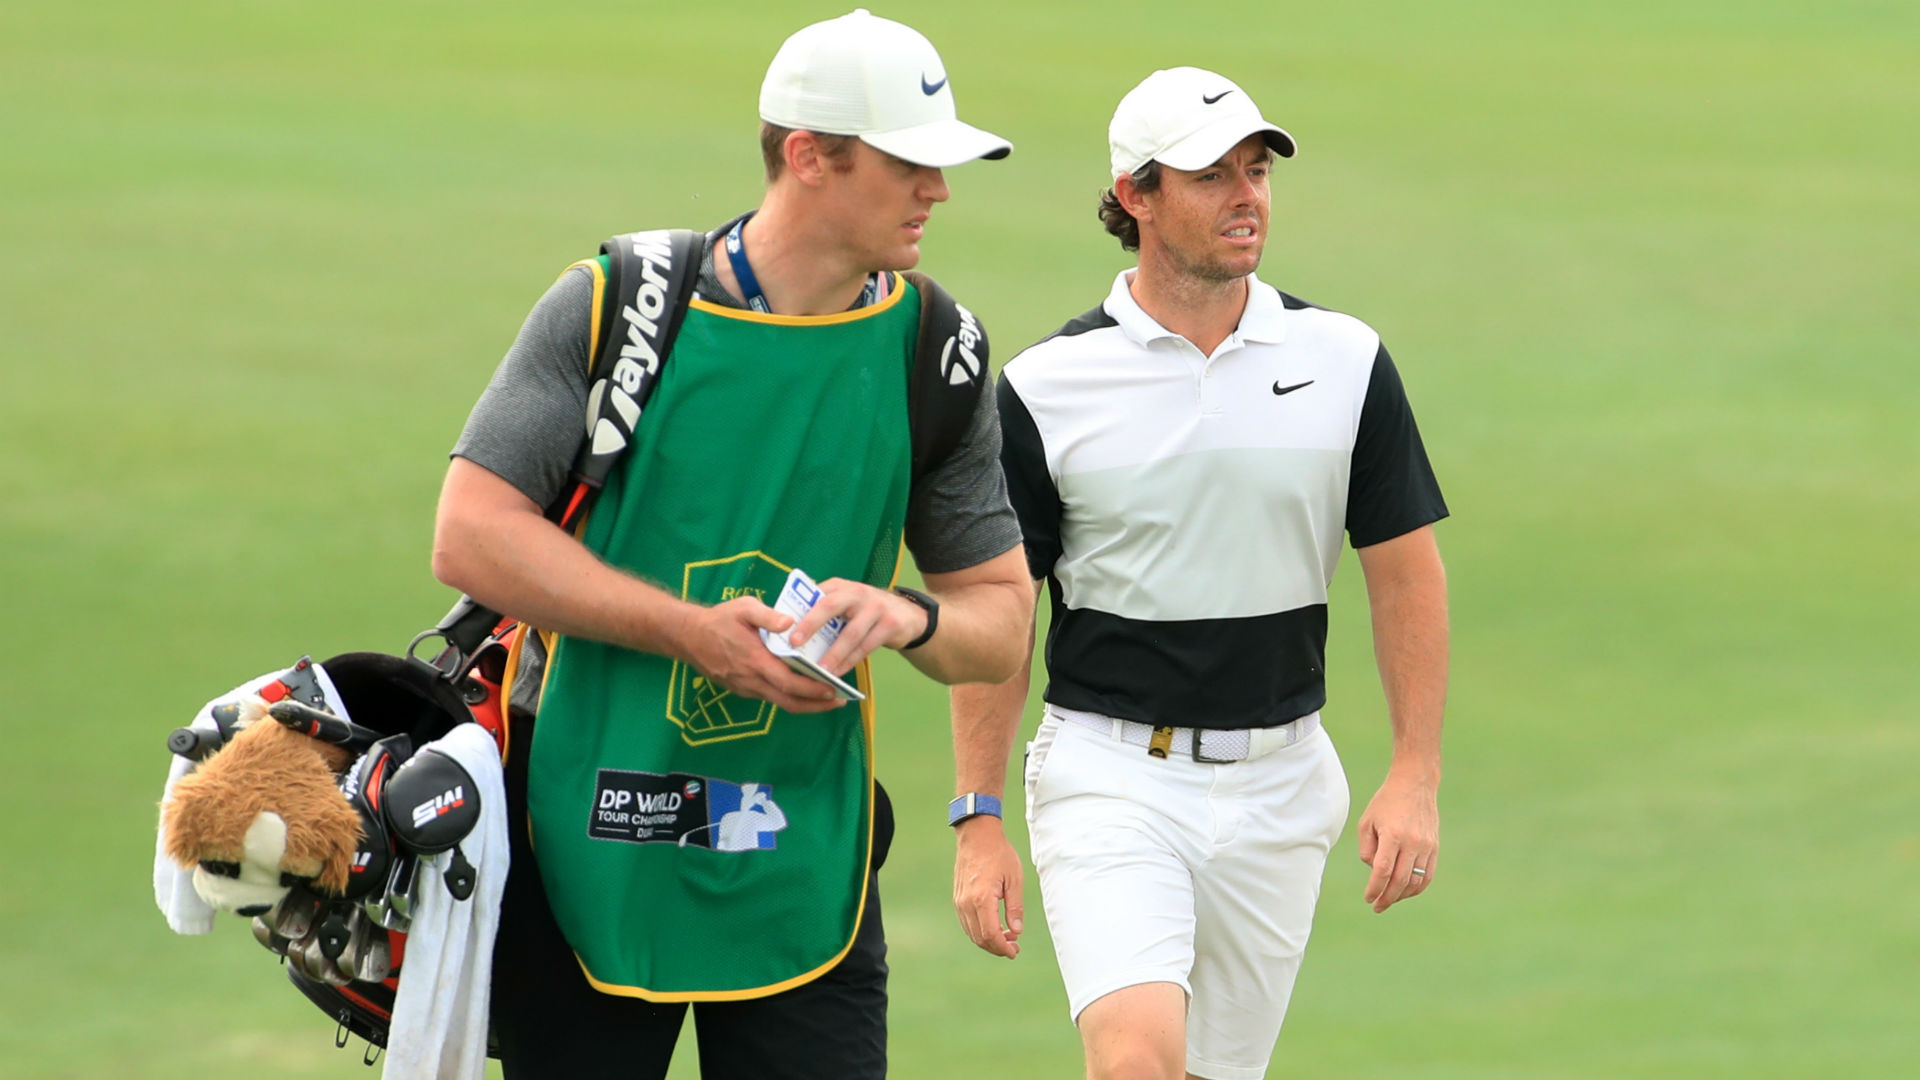 McIlroy unfazed by caddie change as five remain in Race to Dubai running